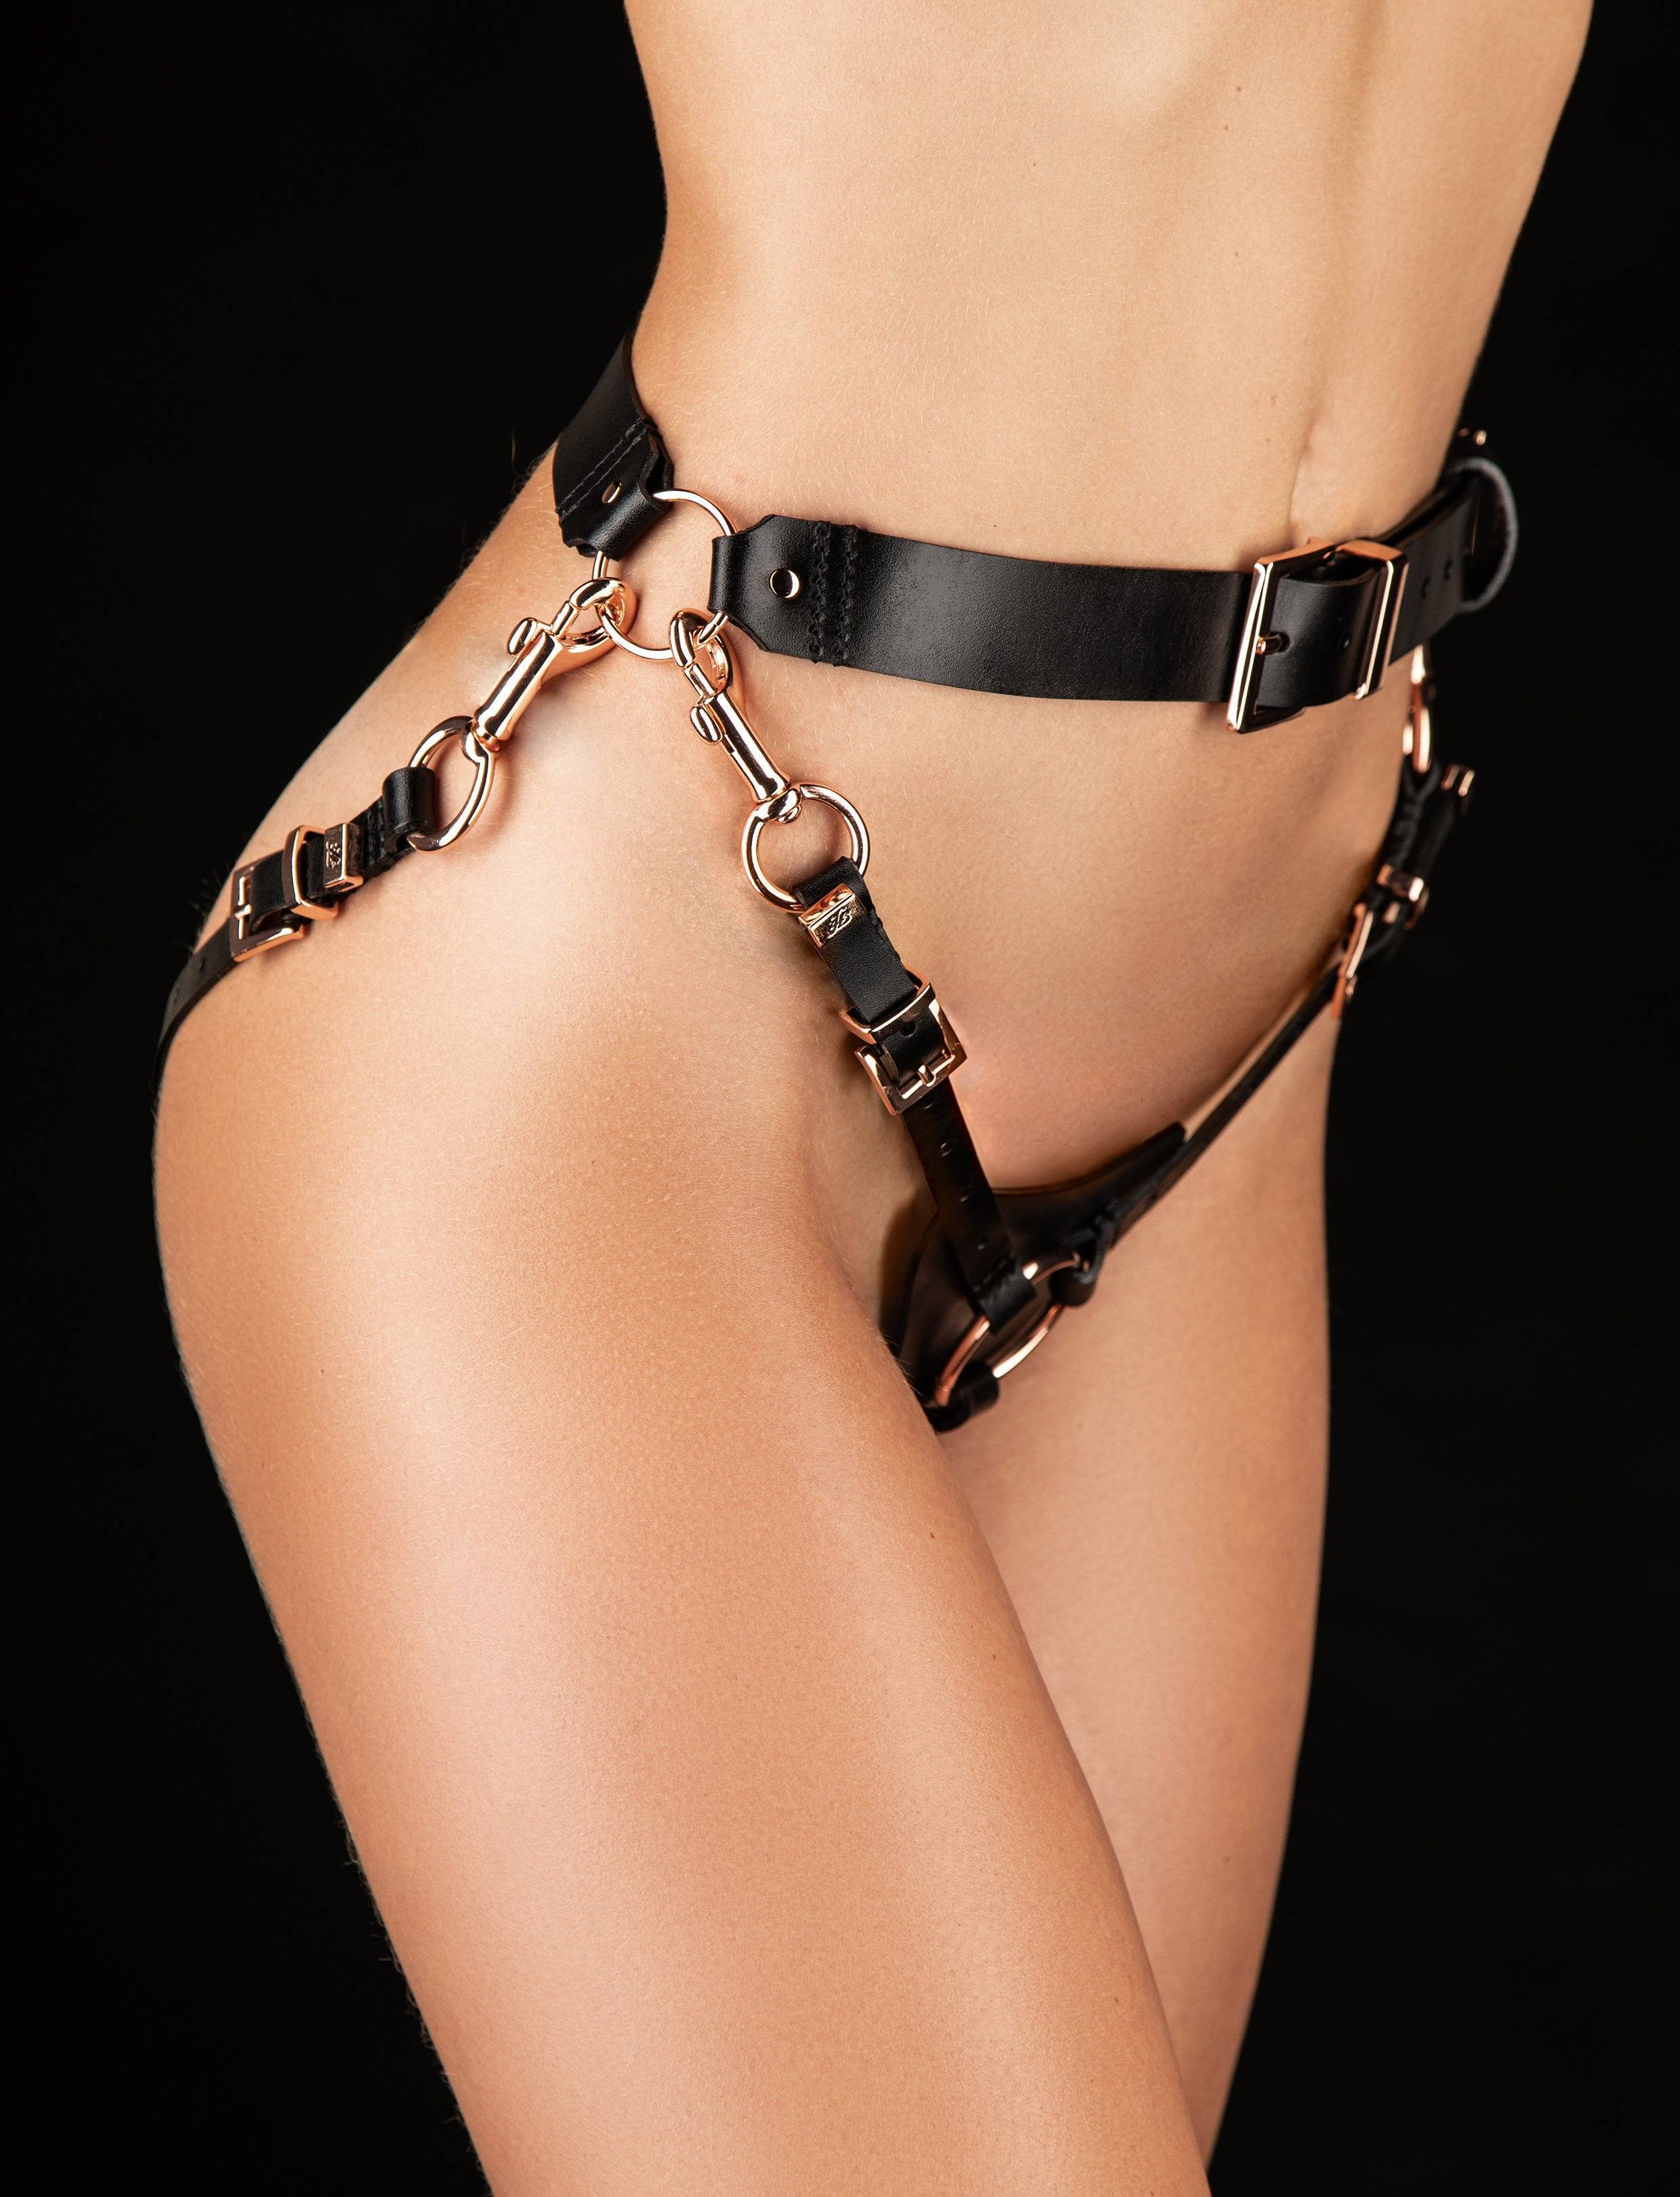 Leather Strap on - Shop Toys | Honey Birdette UK